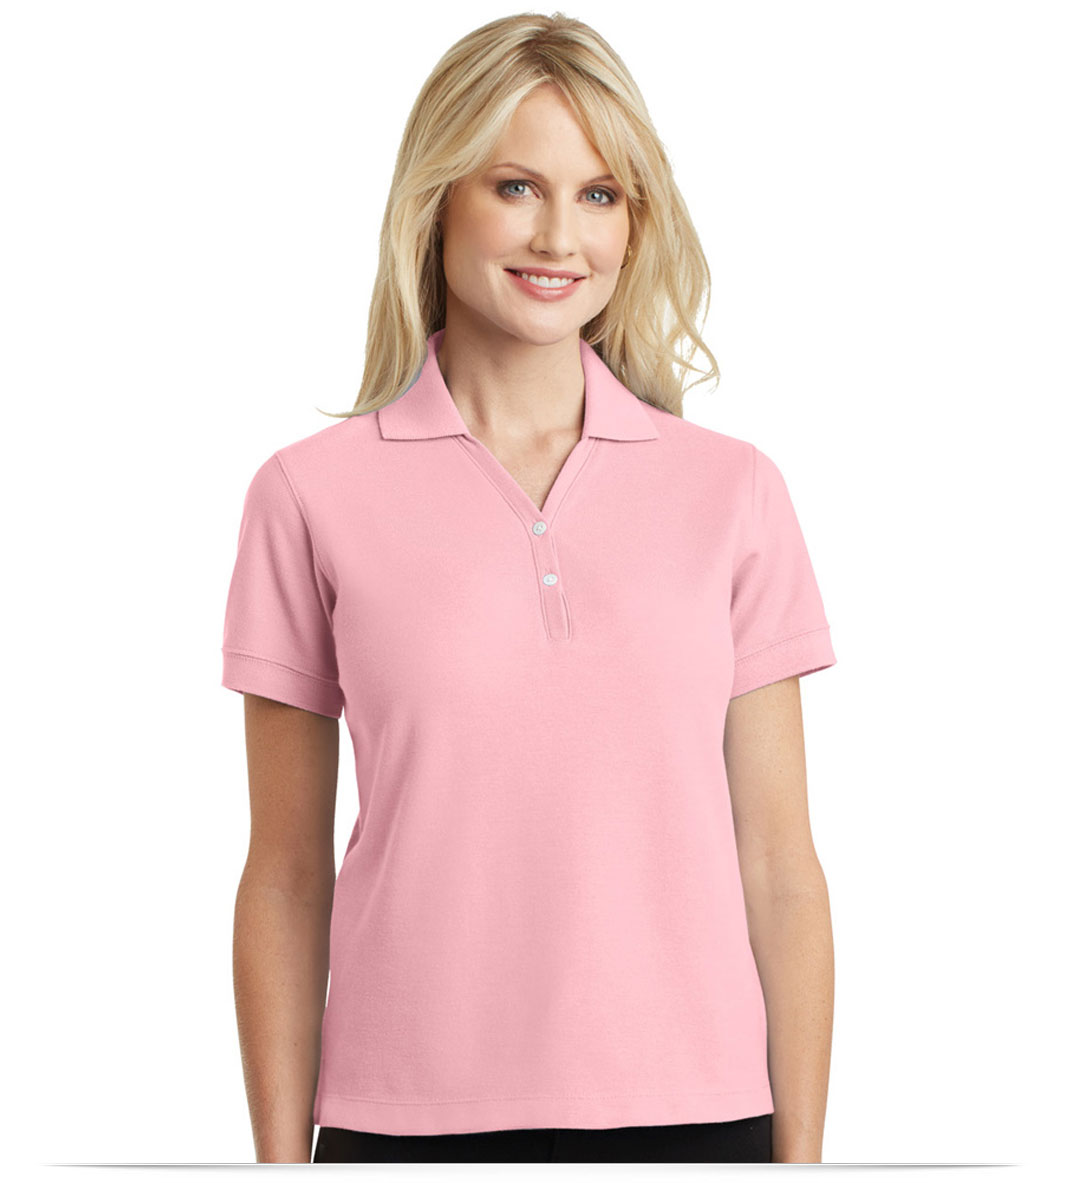 Custom 100% Cotton Embroidered Polo Shirt for Women